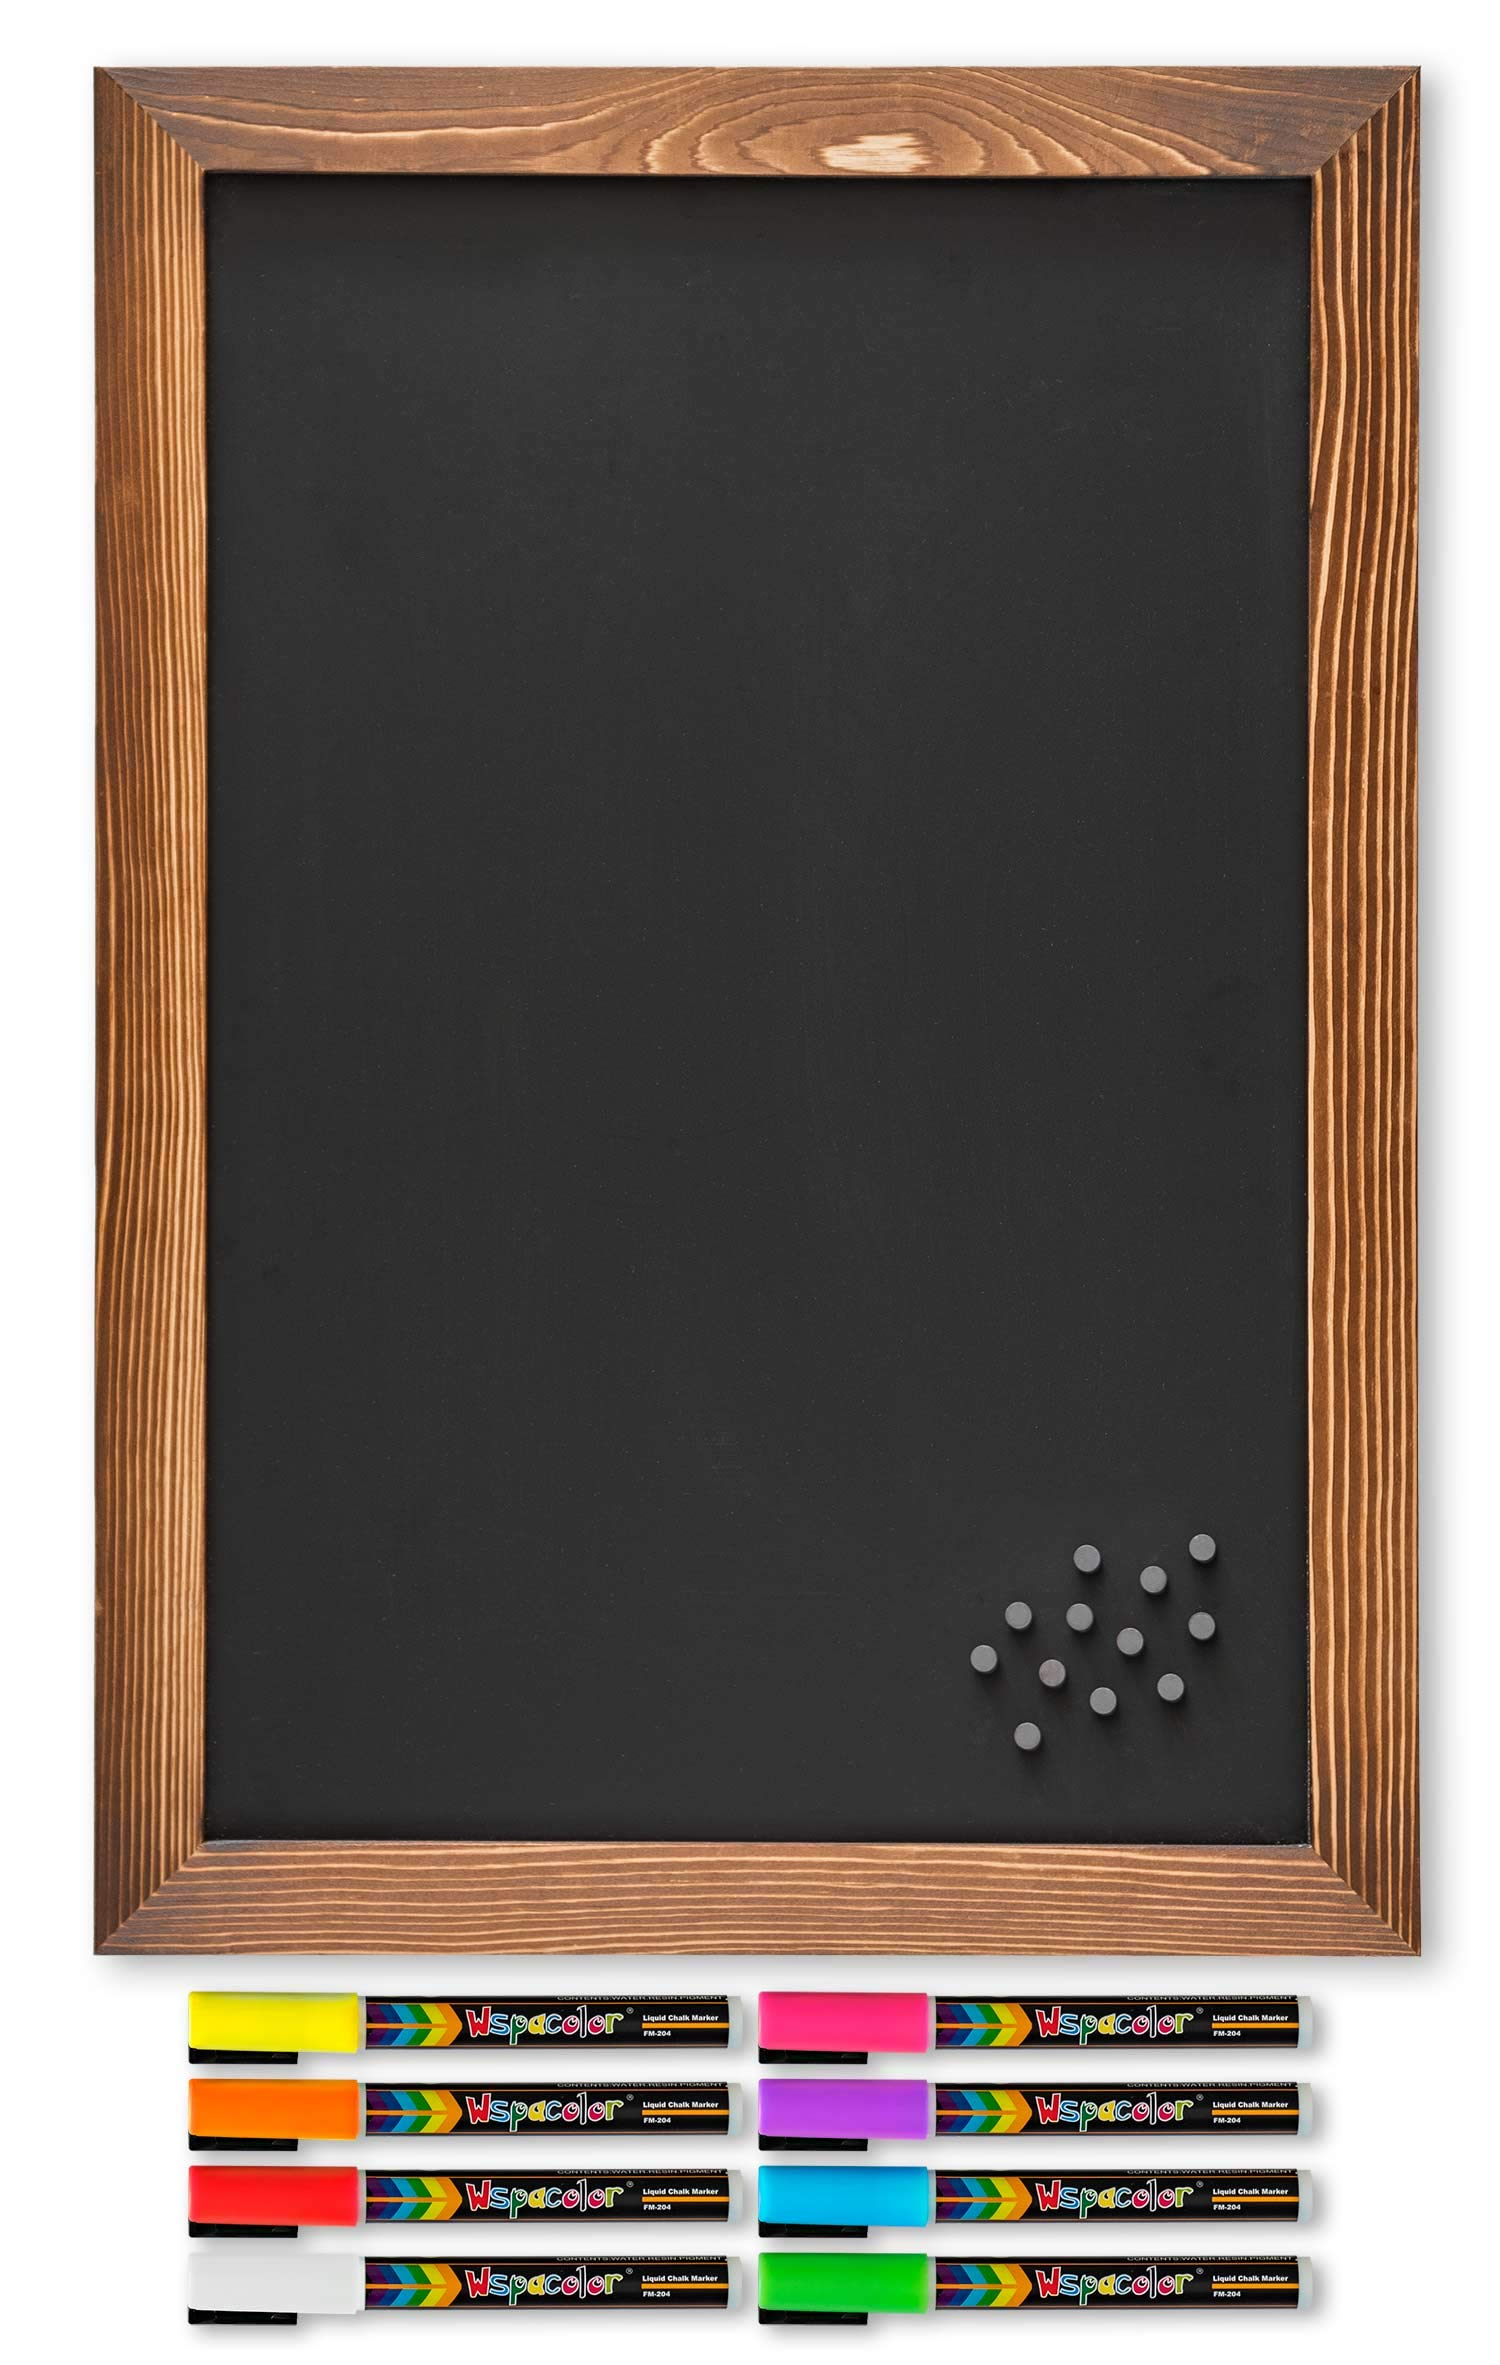 Rustic Magnetic Chalkboard with Torched Wooden Frame/Includes 8 Liquid Chalk Marker Pens and 12 Magnets / 12'' x 20'' Wall Hanging Blackboard/Perfect for Menu Boards, Signs, Wedding Decorations etc by Canva Creations